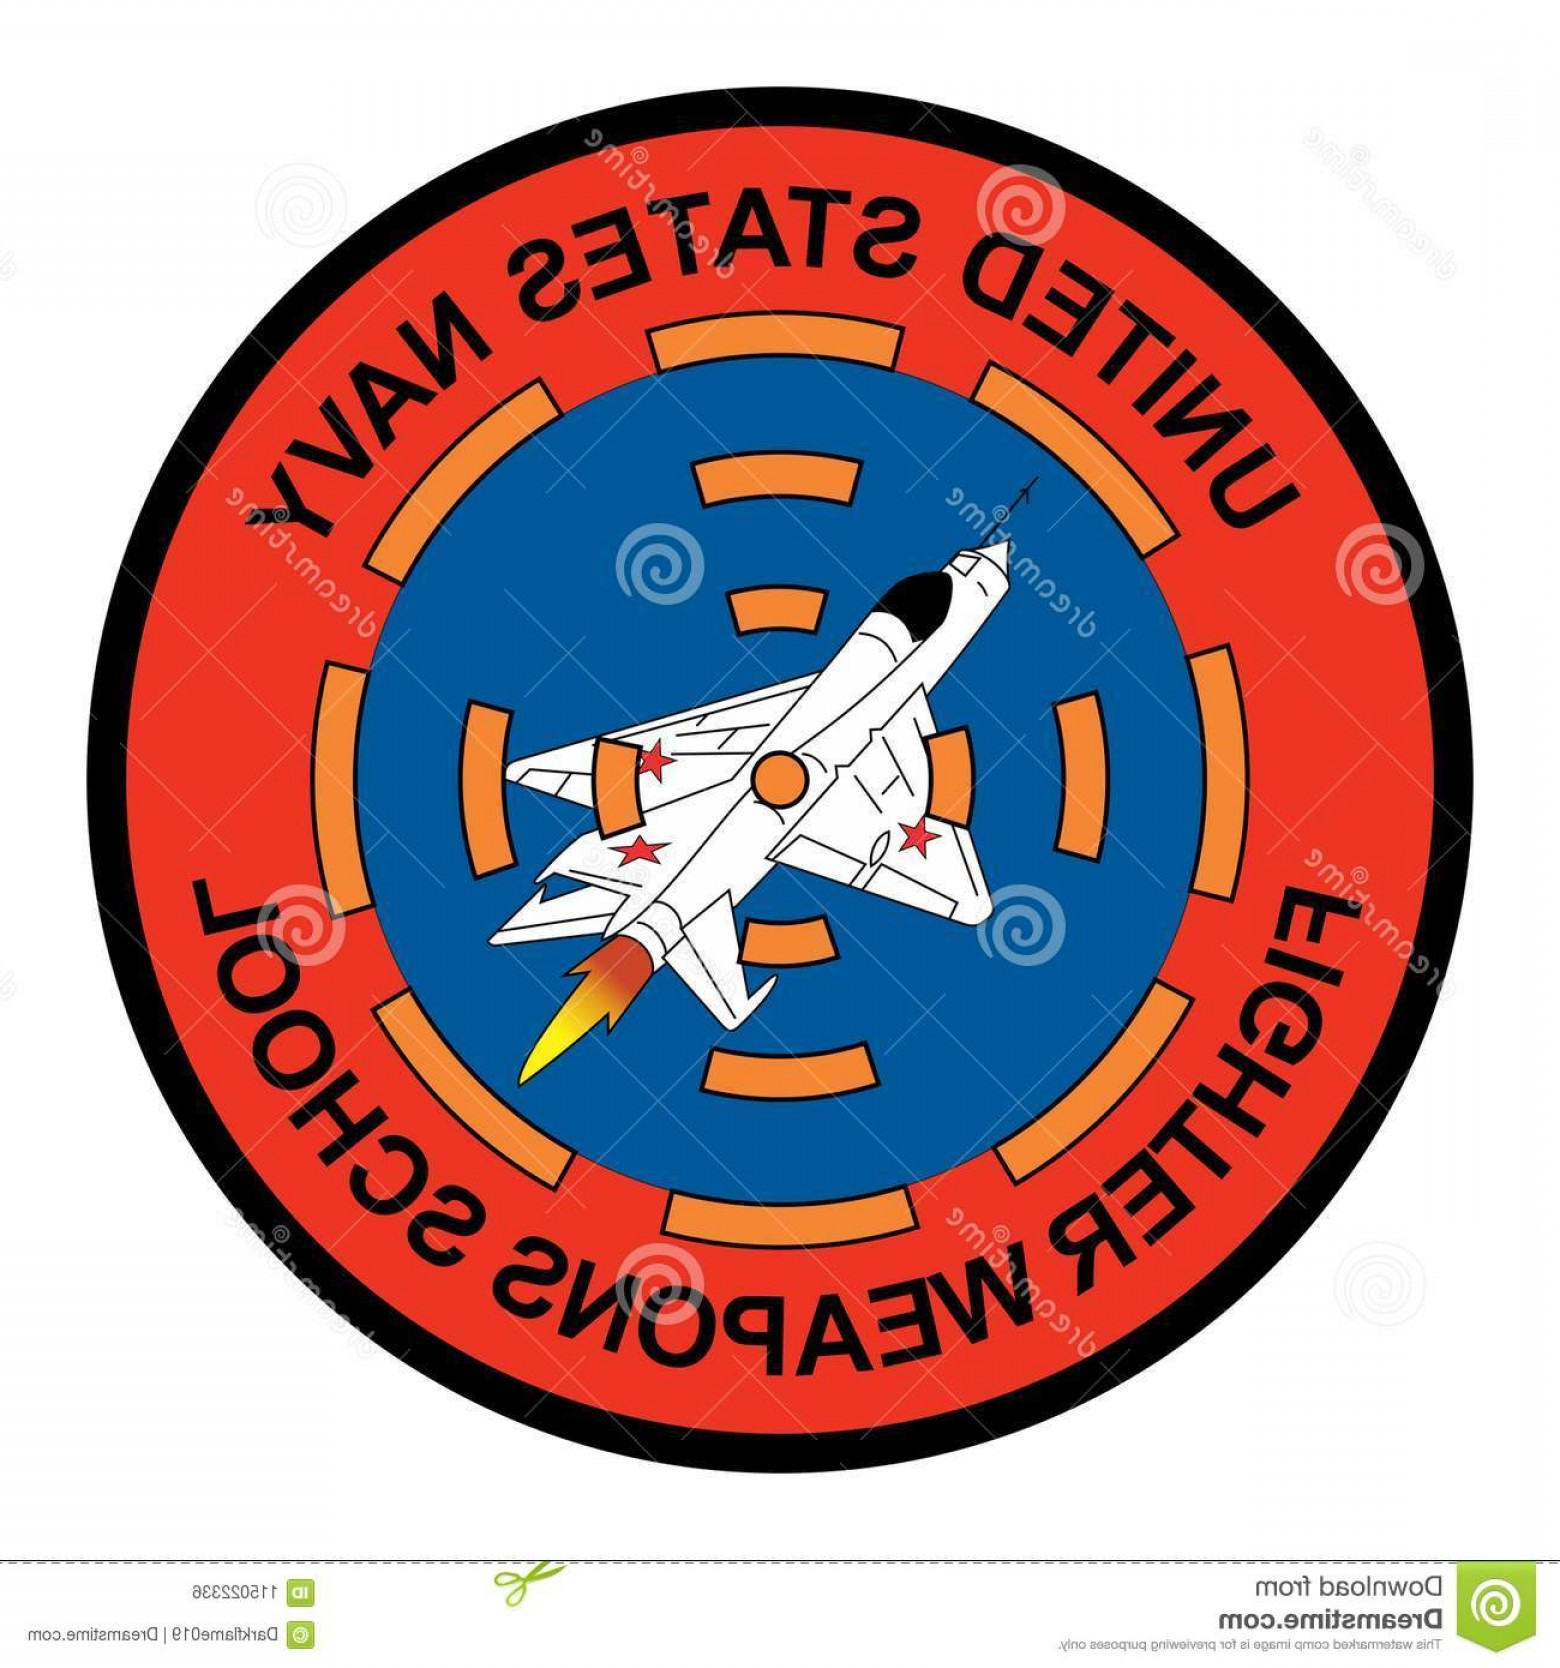 1560x1668 United States Navy Fighter Weapons School Logo Encapsulated